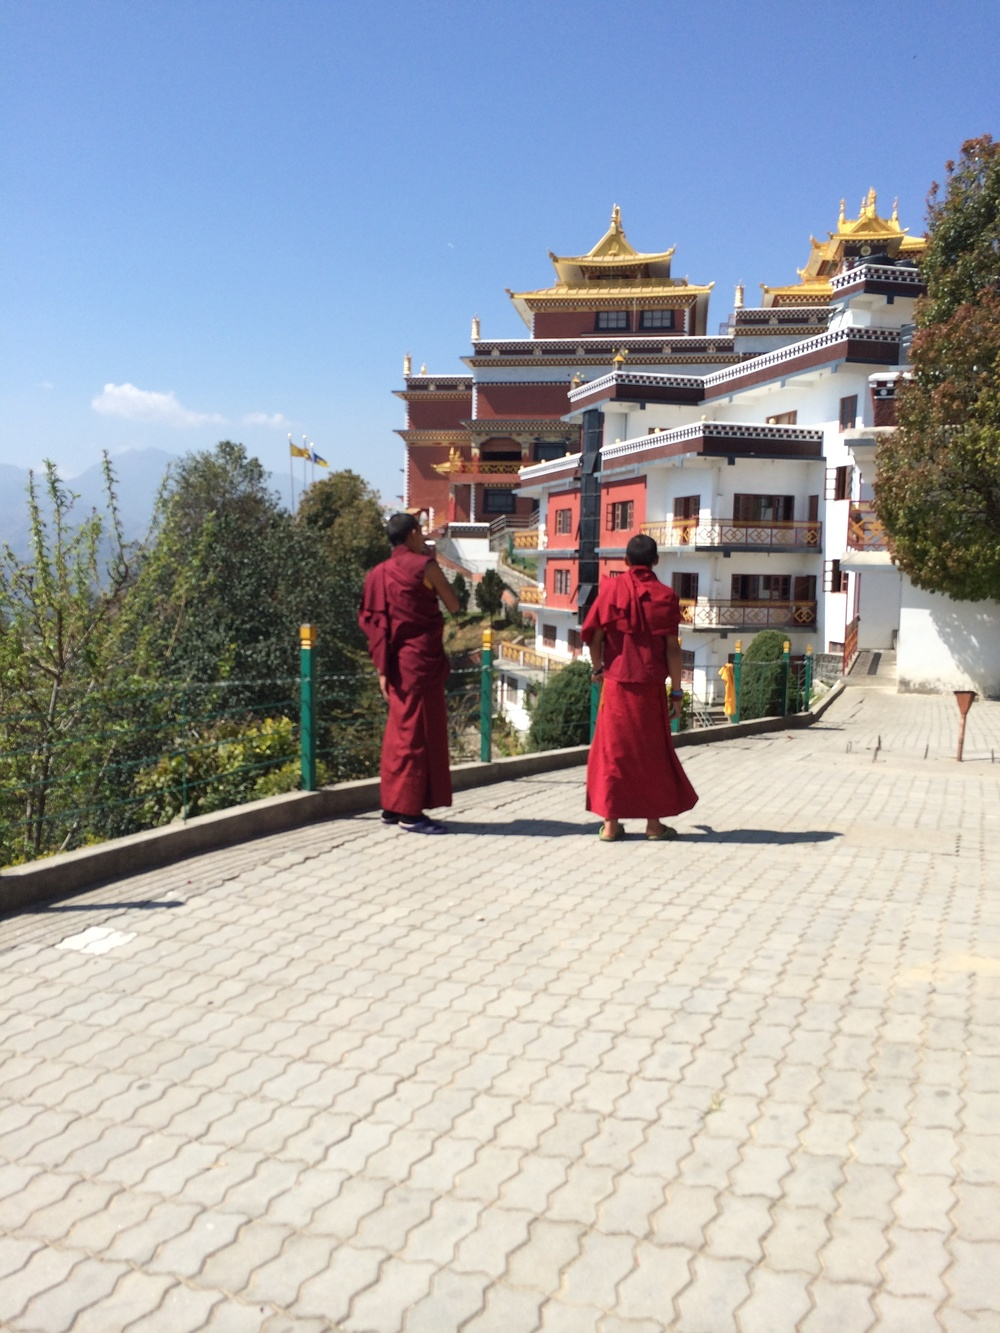 Visiting a Buddhist monastery.